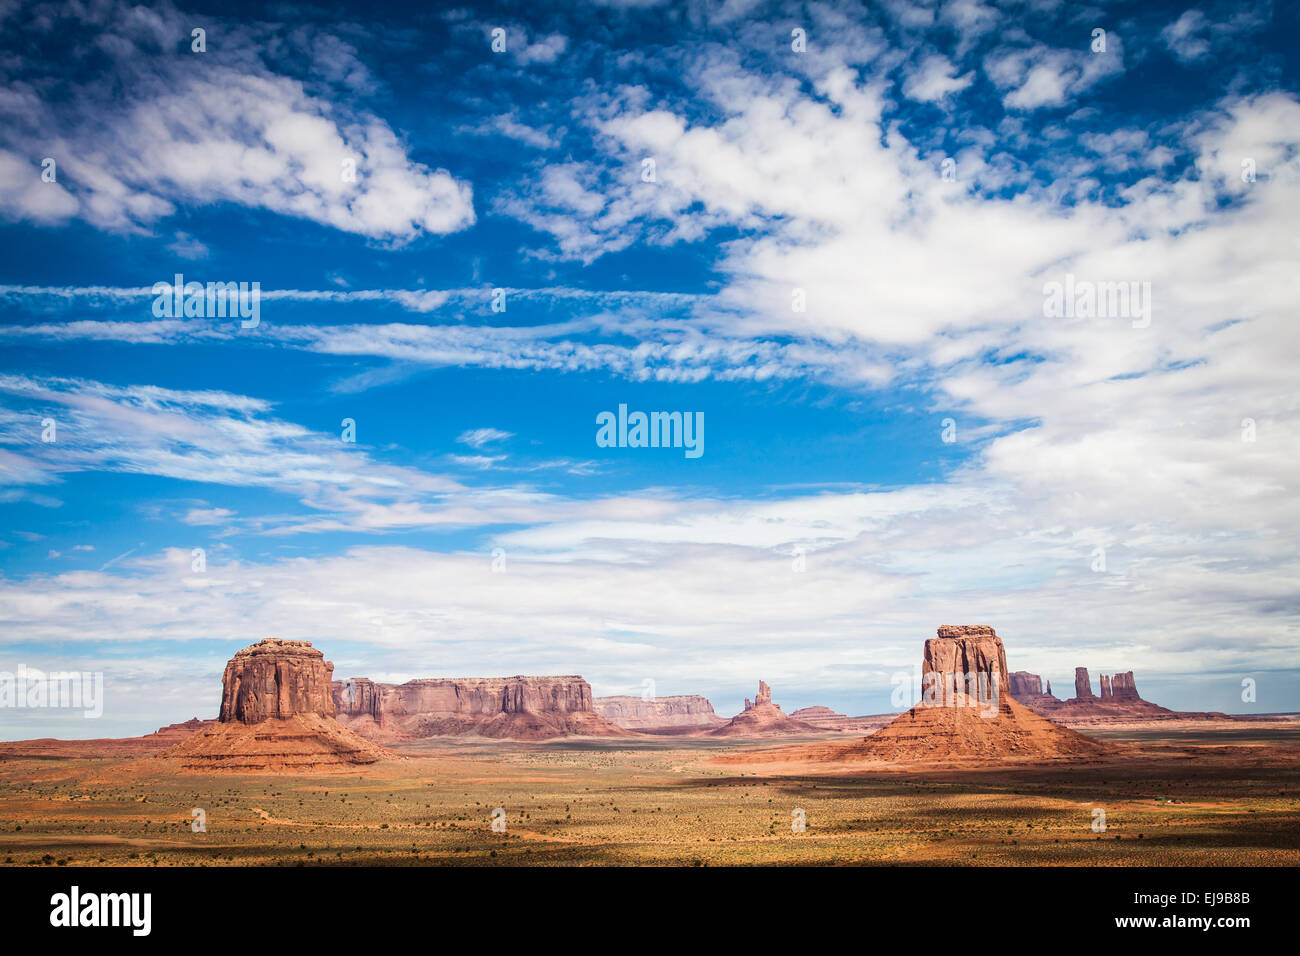 Monument Valley Photo Stock